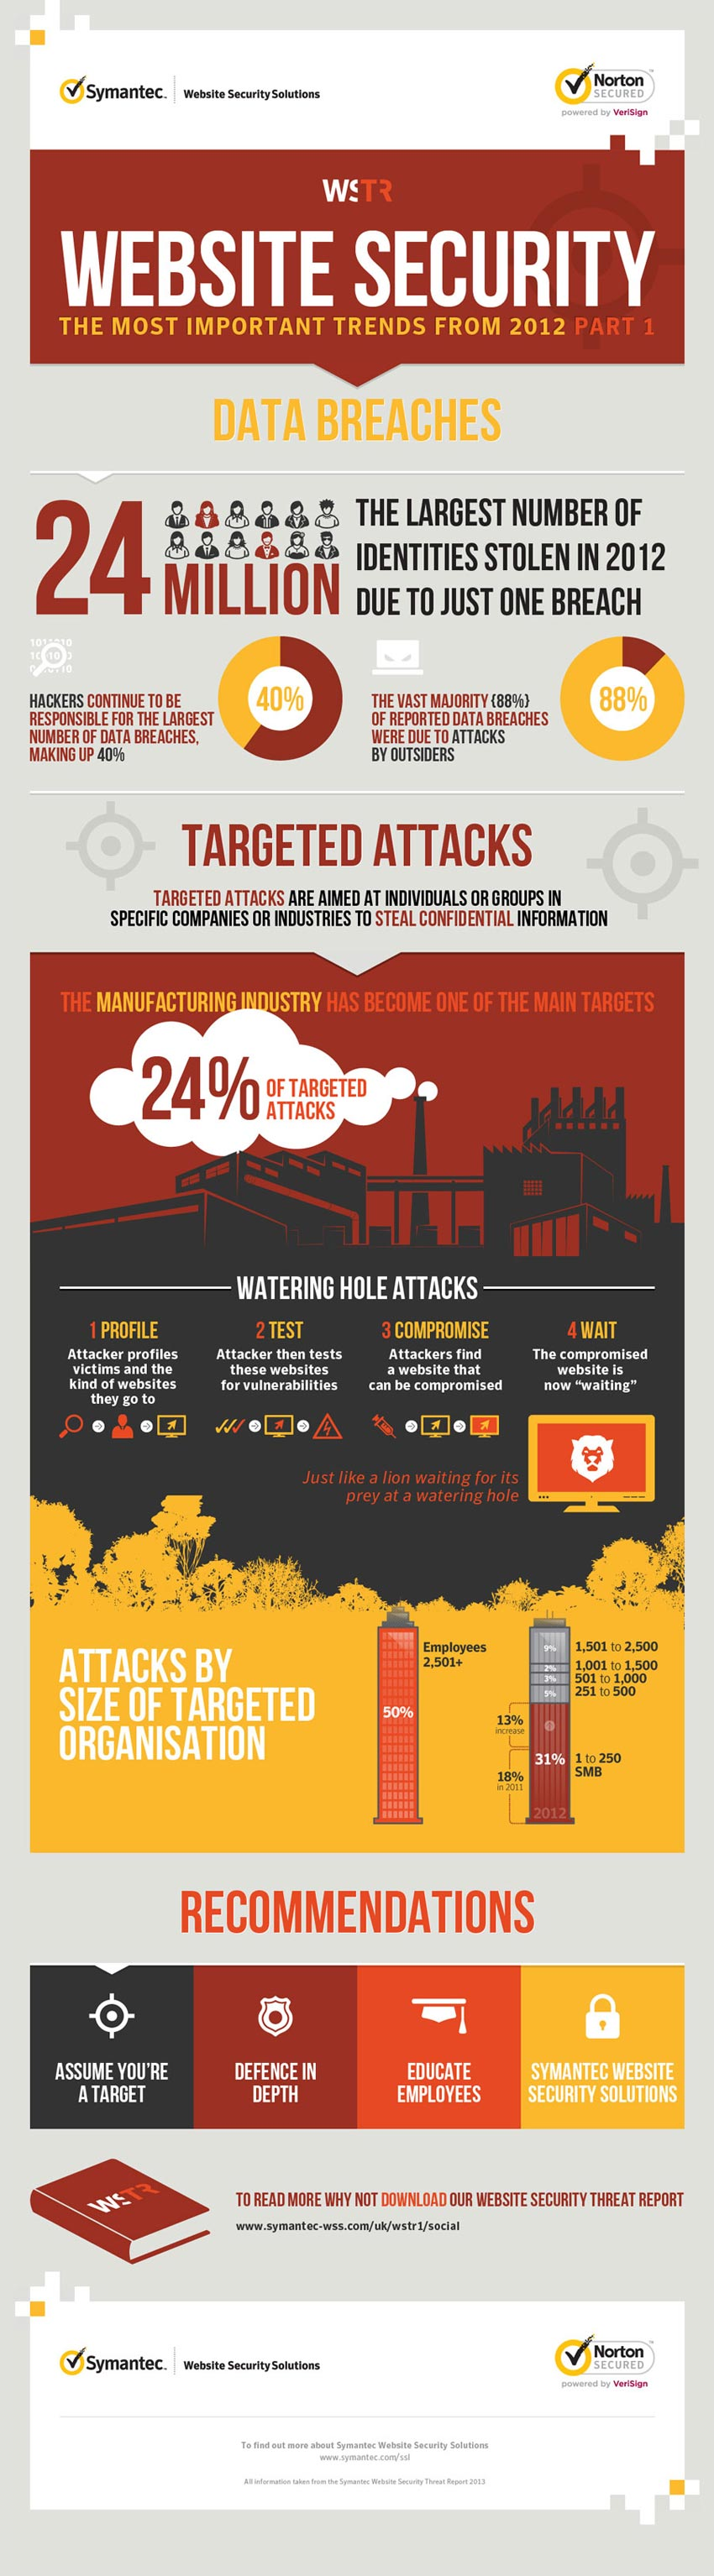 Website Security Issues: 31 Percent of Targeted Attack Victims are SMBs